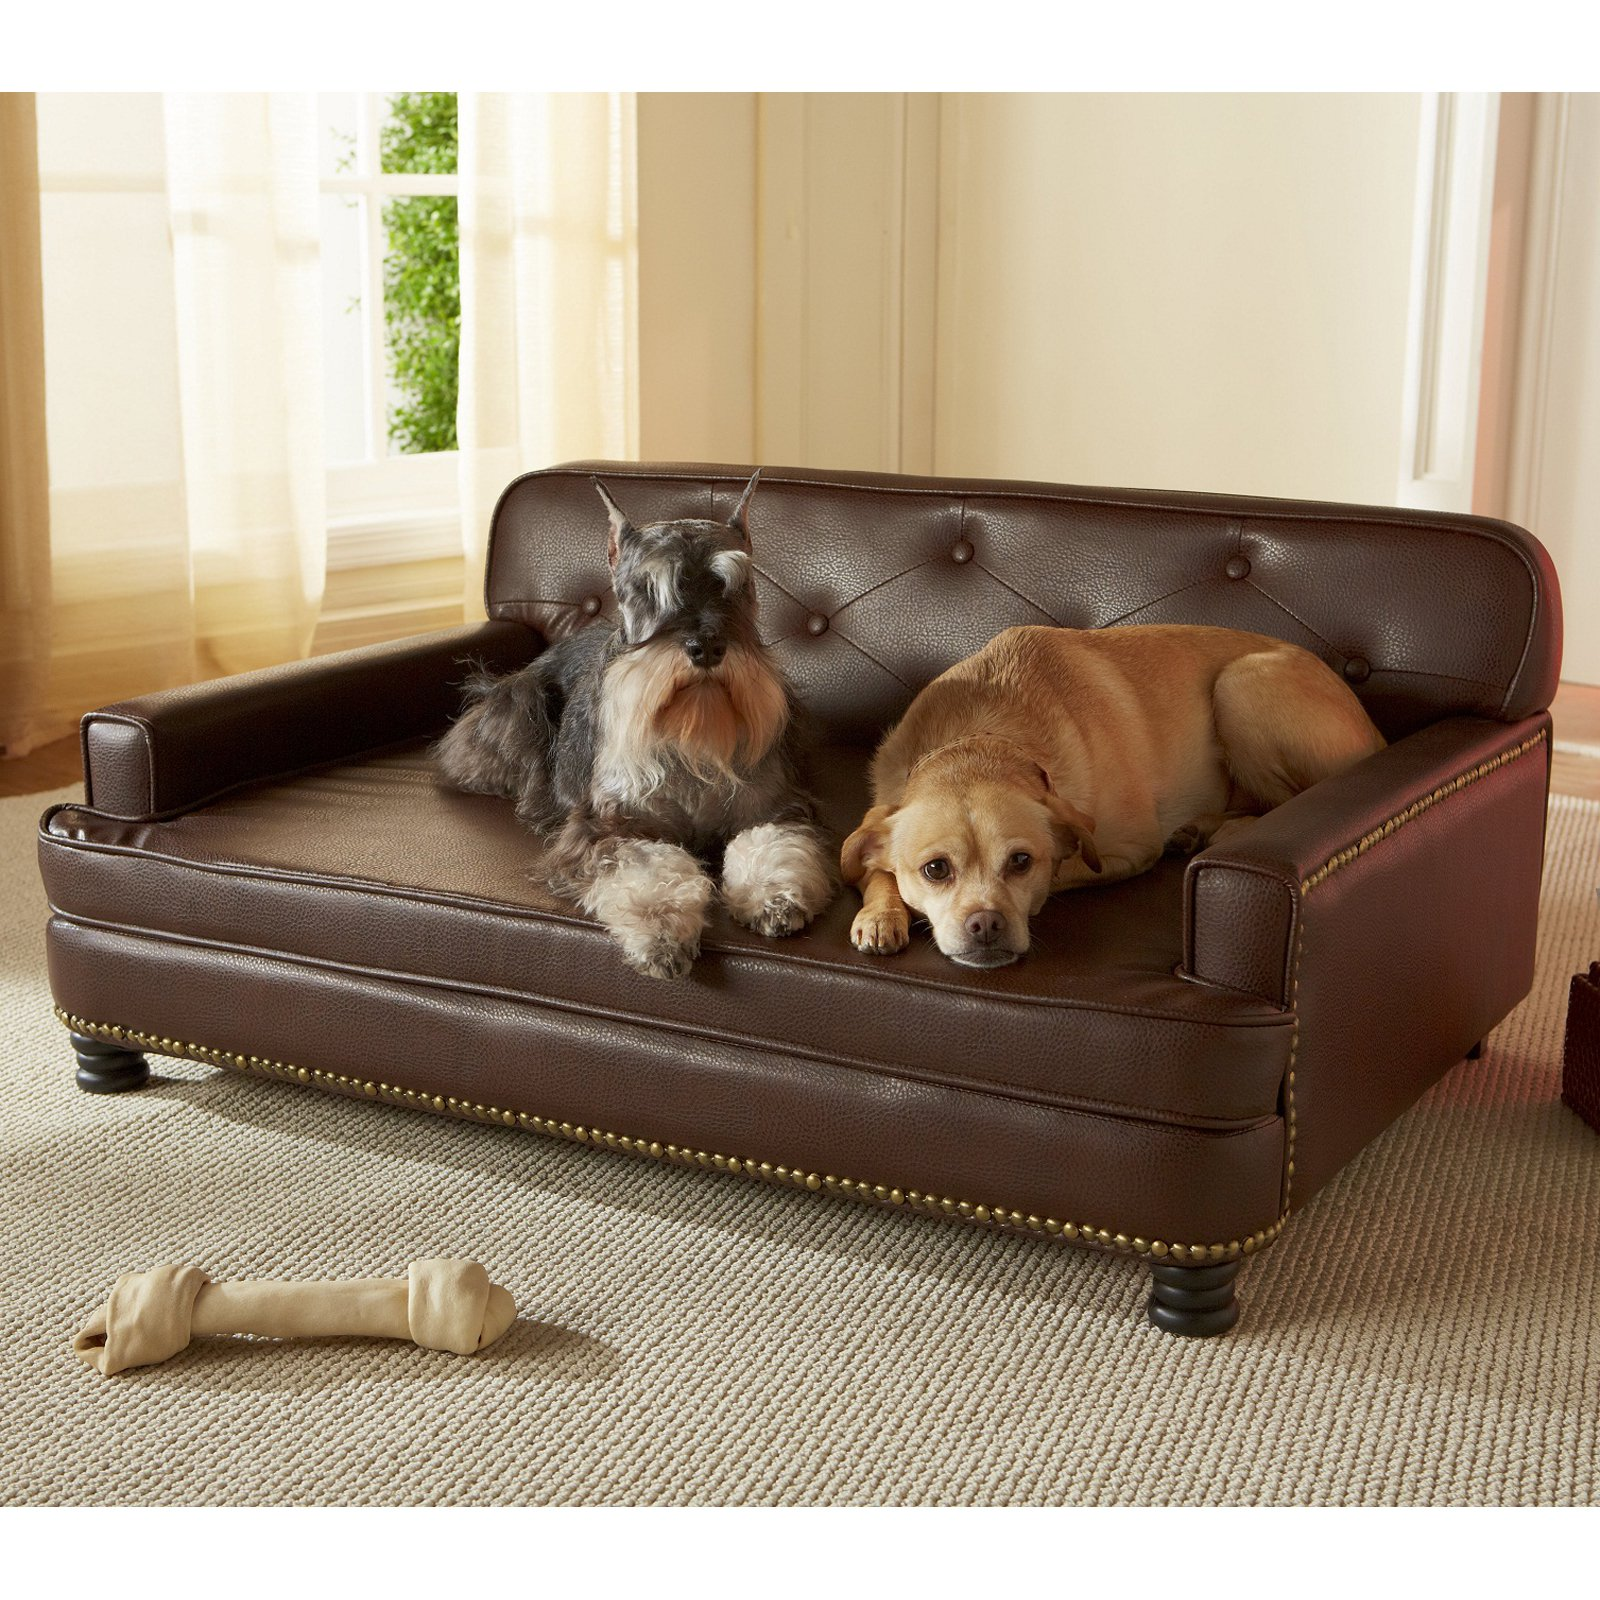 best leather sofas for dogs muji sofa bed review brown dog faux indoor raised pet couch upholstered cushion cat